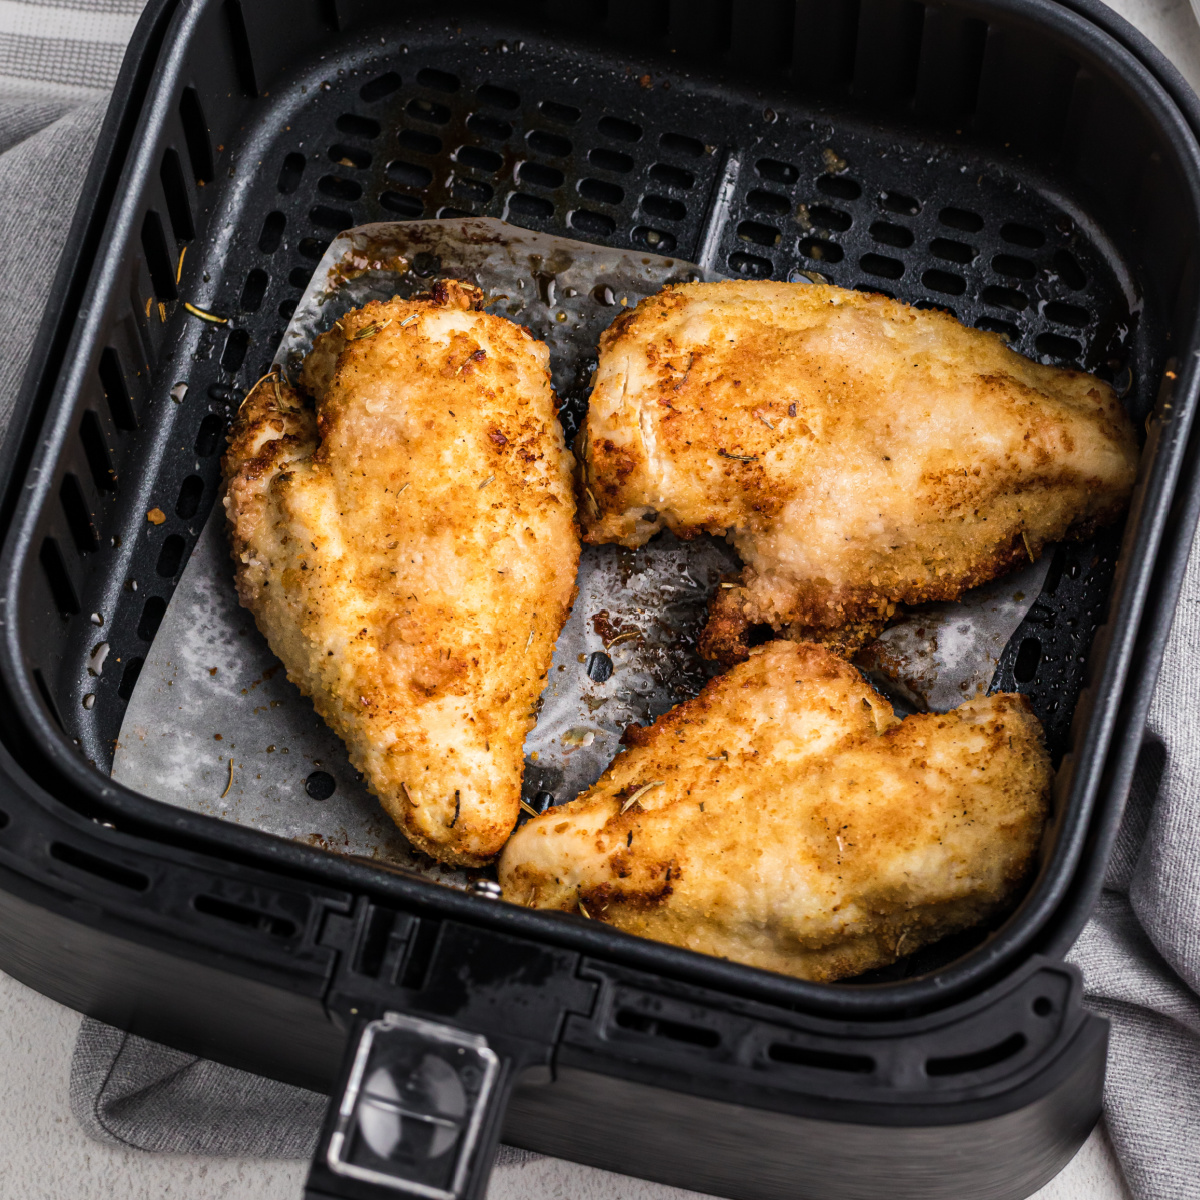 Air Fryer Chicken breast fully cooked in a basket.